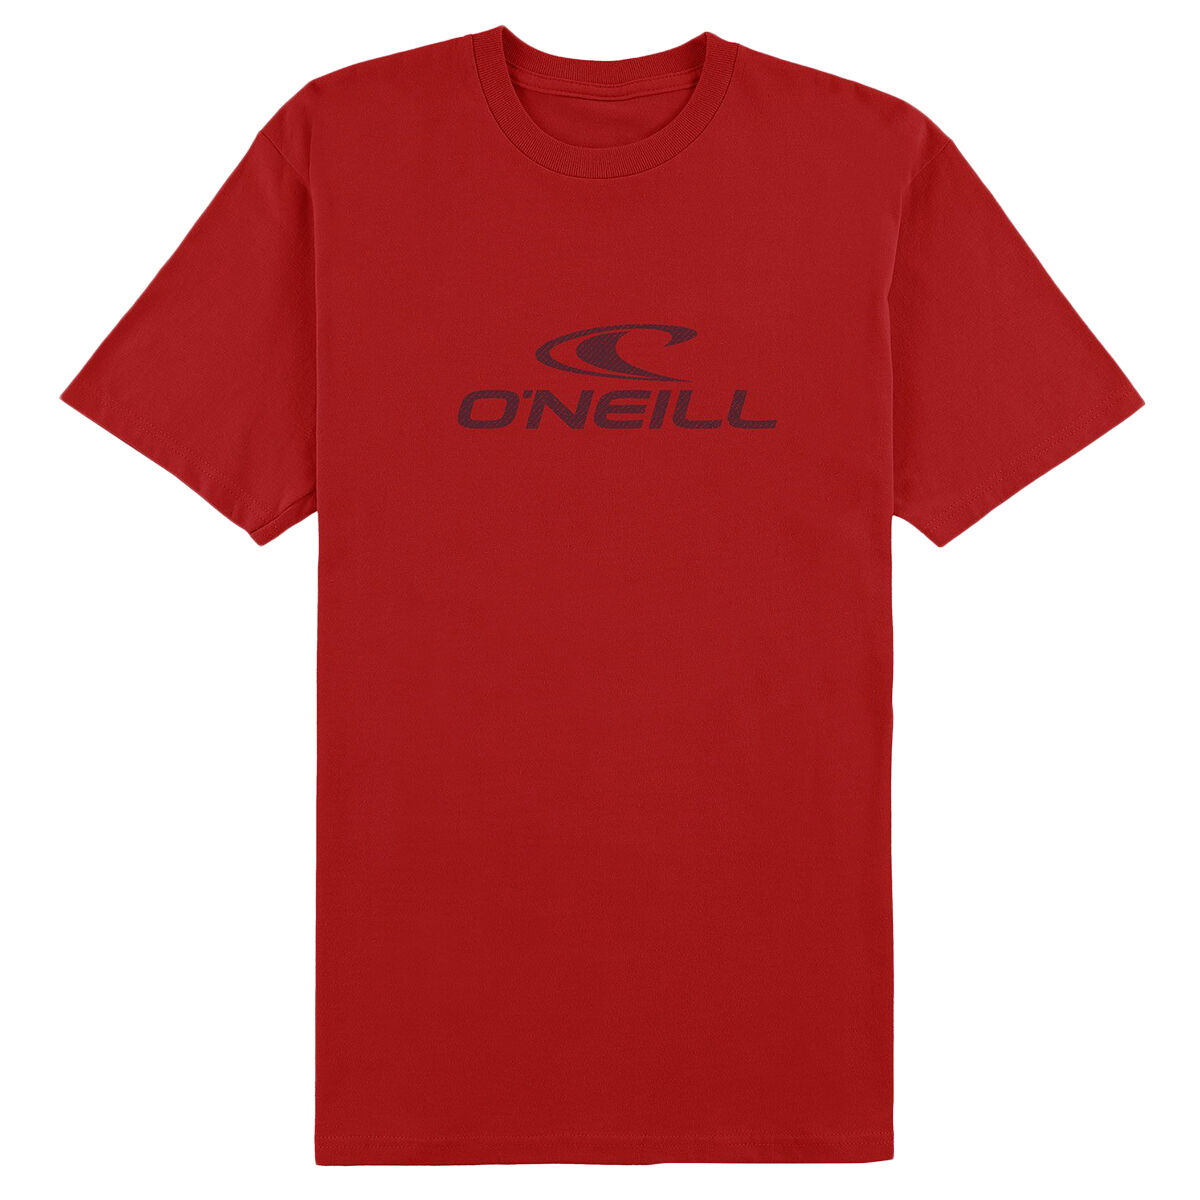 O'neill Men's Supreme Short-Sleeve Tee - Red, S